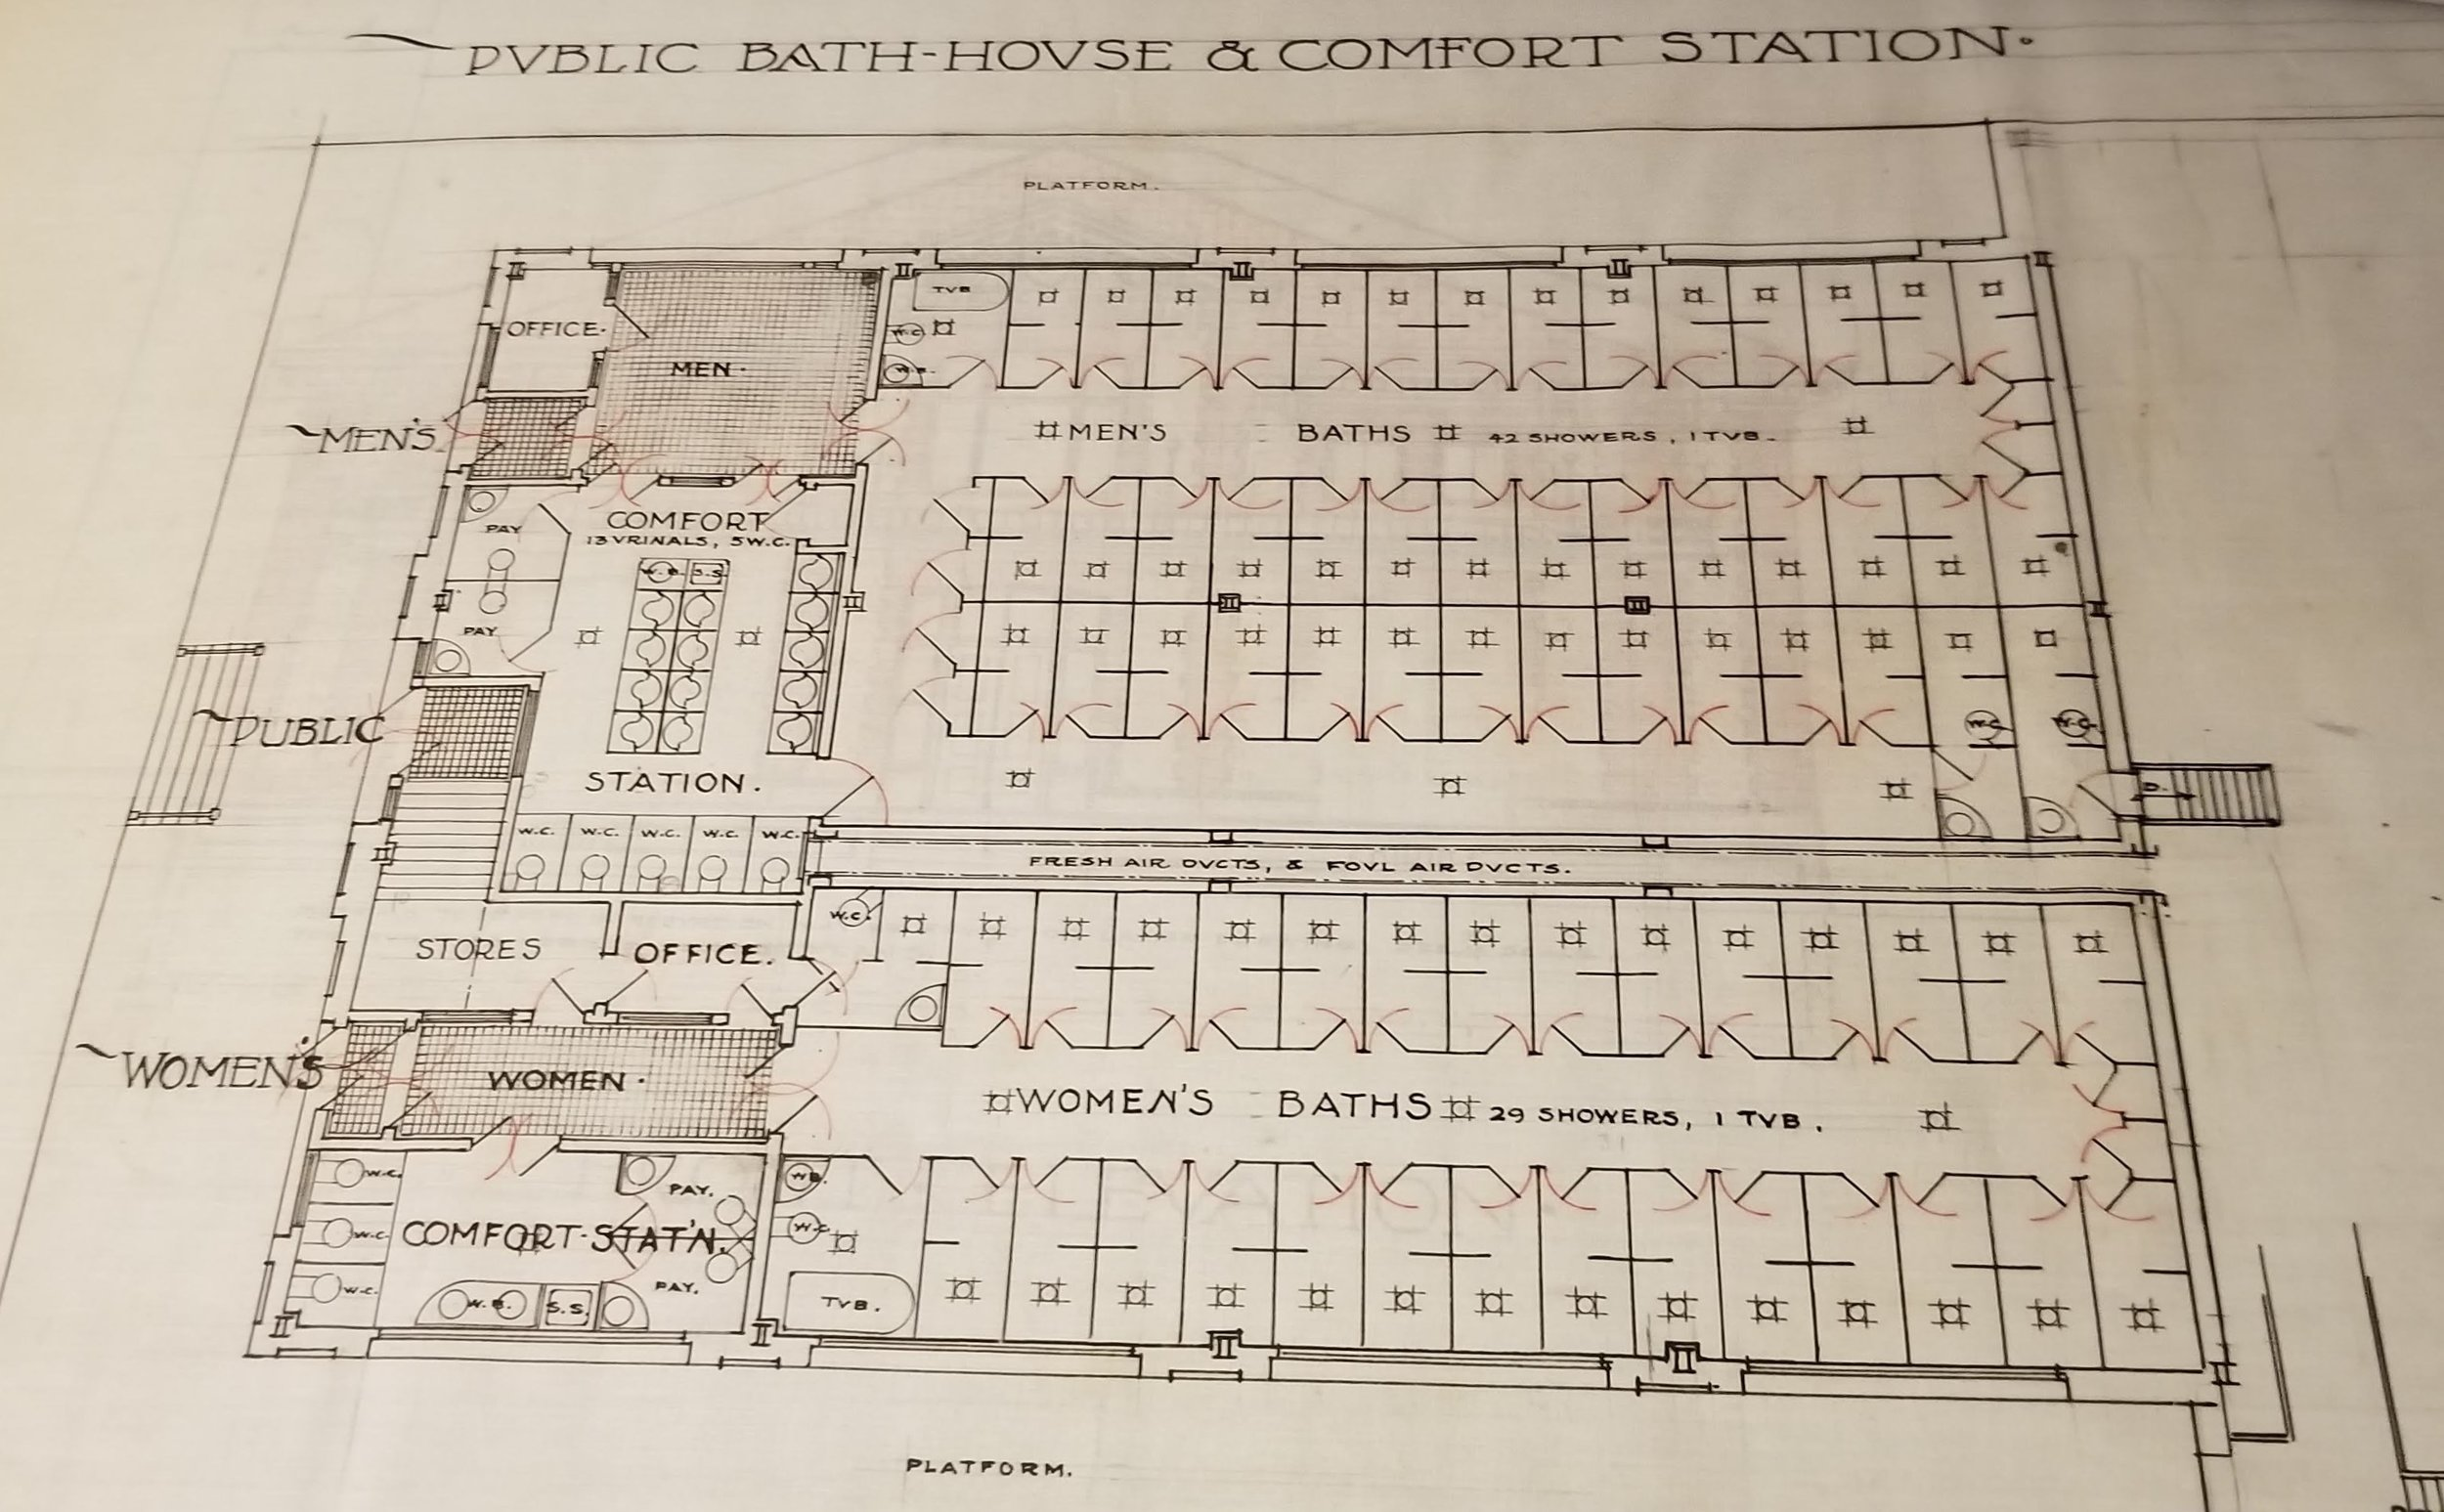 Blueprint of Eighth Ward Public Market, Public Bath House & Comfort Station, undated. Department of Public Works, NYC Municipal Archives.